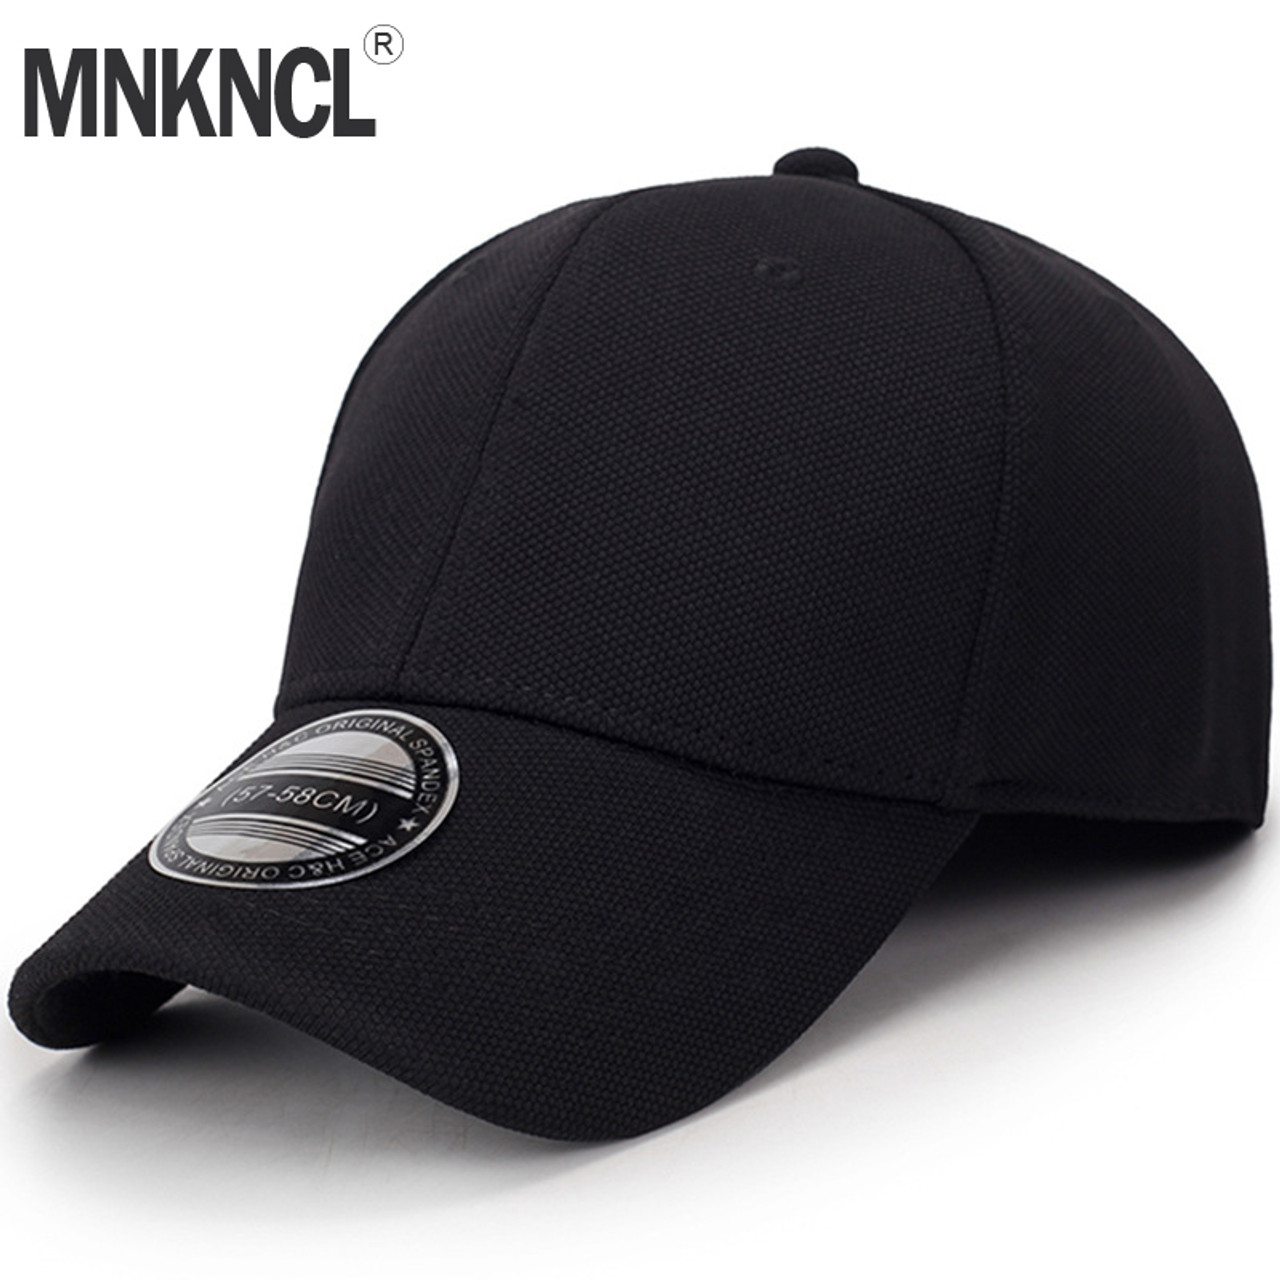 4f90f2678864f High Quality Baseball Cap Men Snapback Hats Caps Men Flexfit Fitted Closed  Full Cap Women Gorras ...